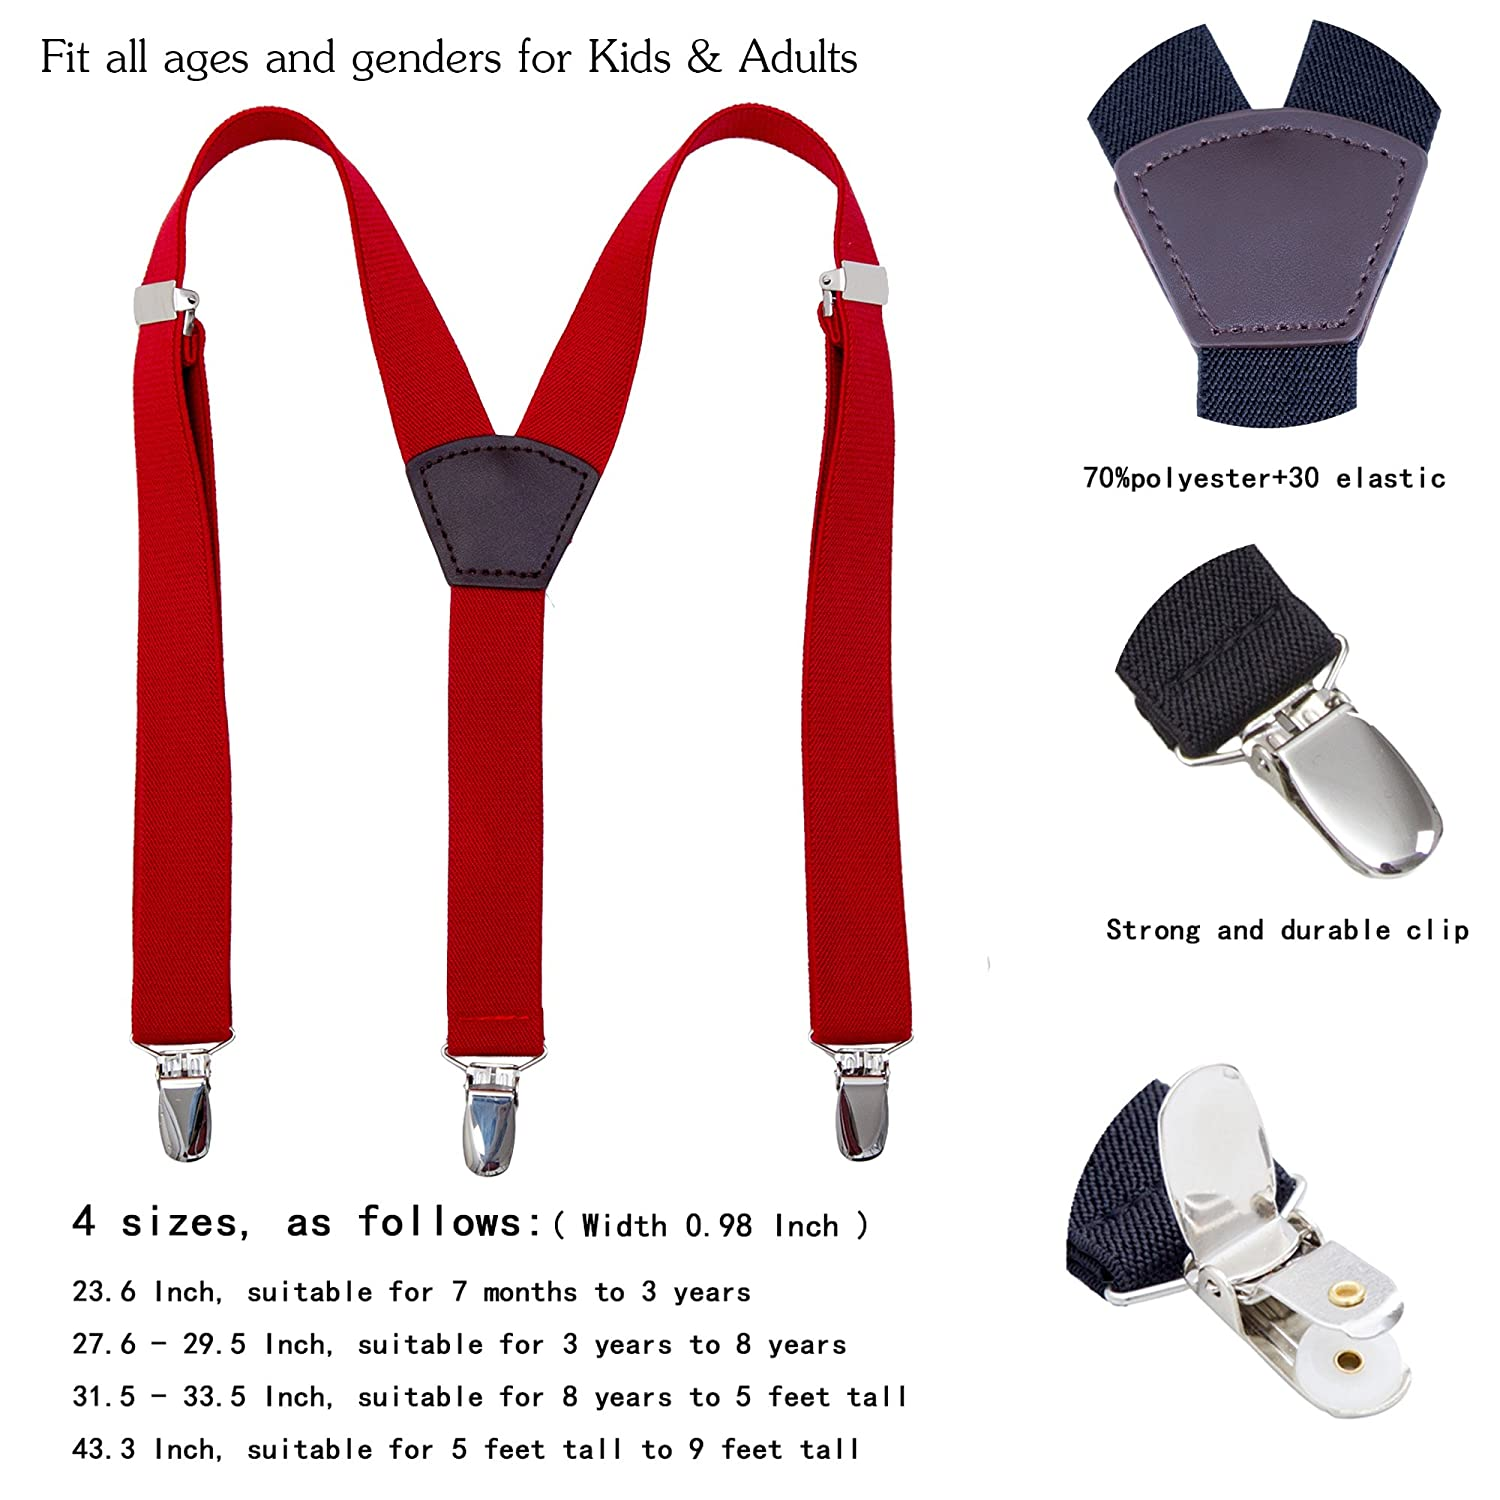 Y Back Stretchy Straps Strong Clip Leather Braces Suspenders Black, 23.6 Inch Toddlers Kids Boy/'s Men/'s Suspenders 7 Months - 3 Years